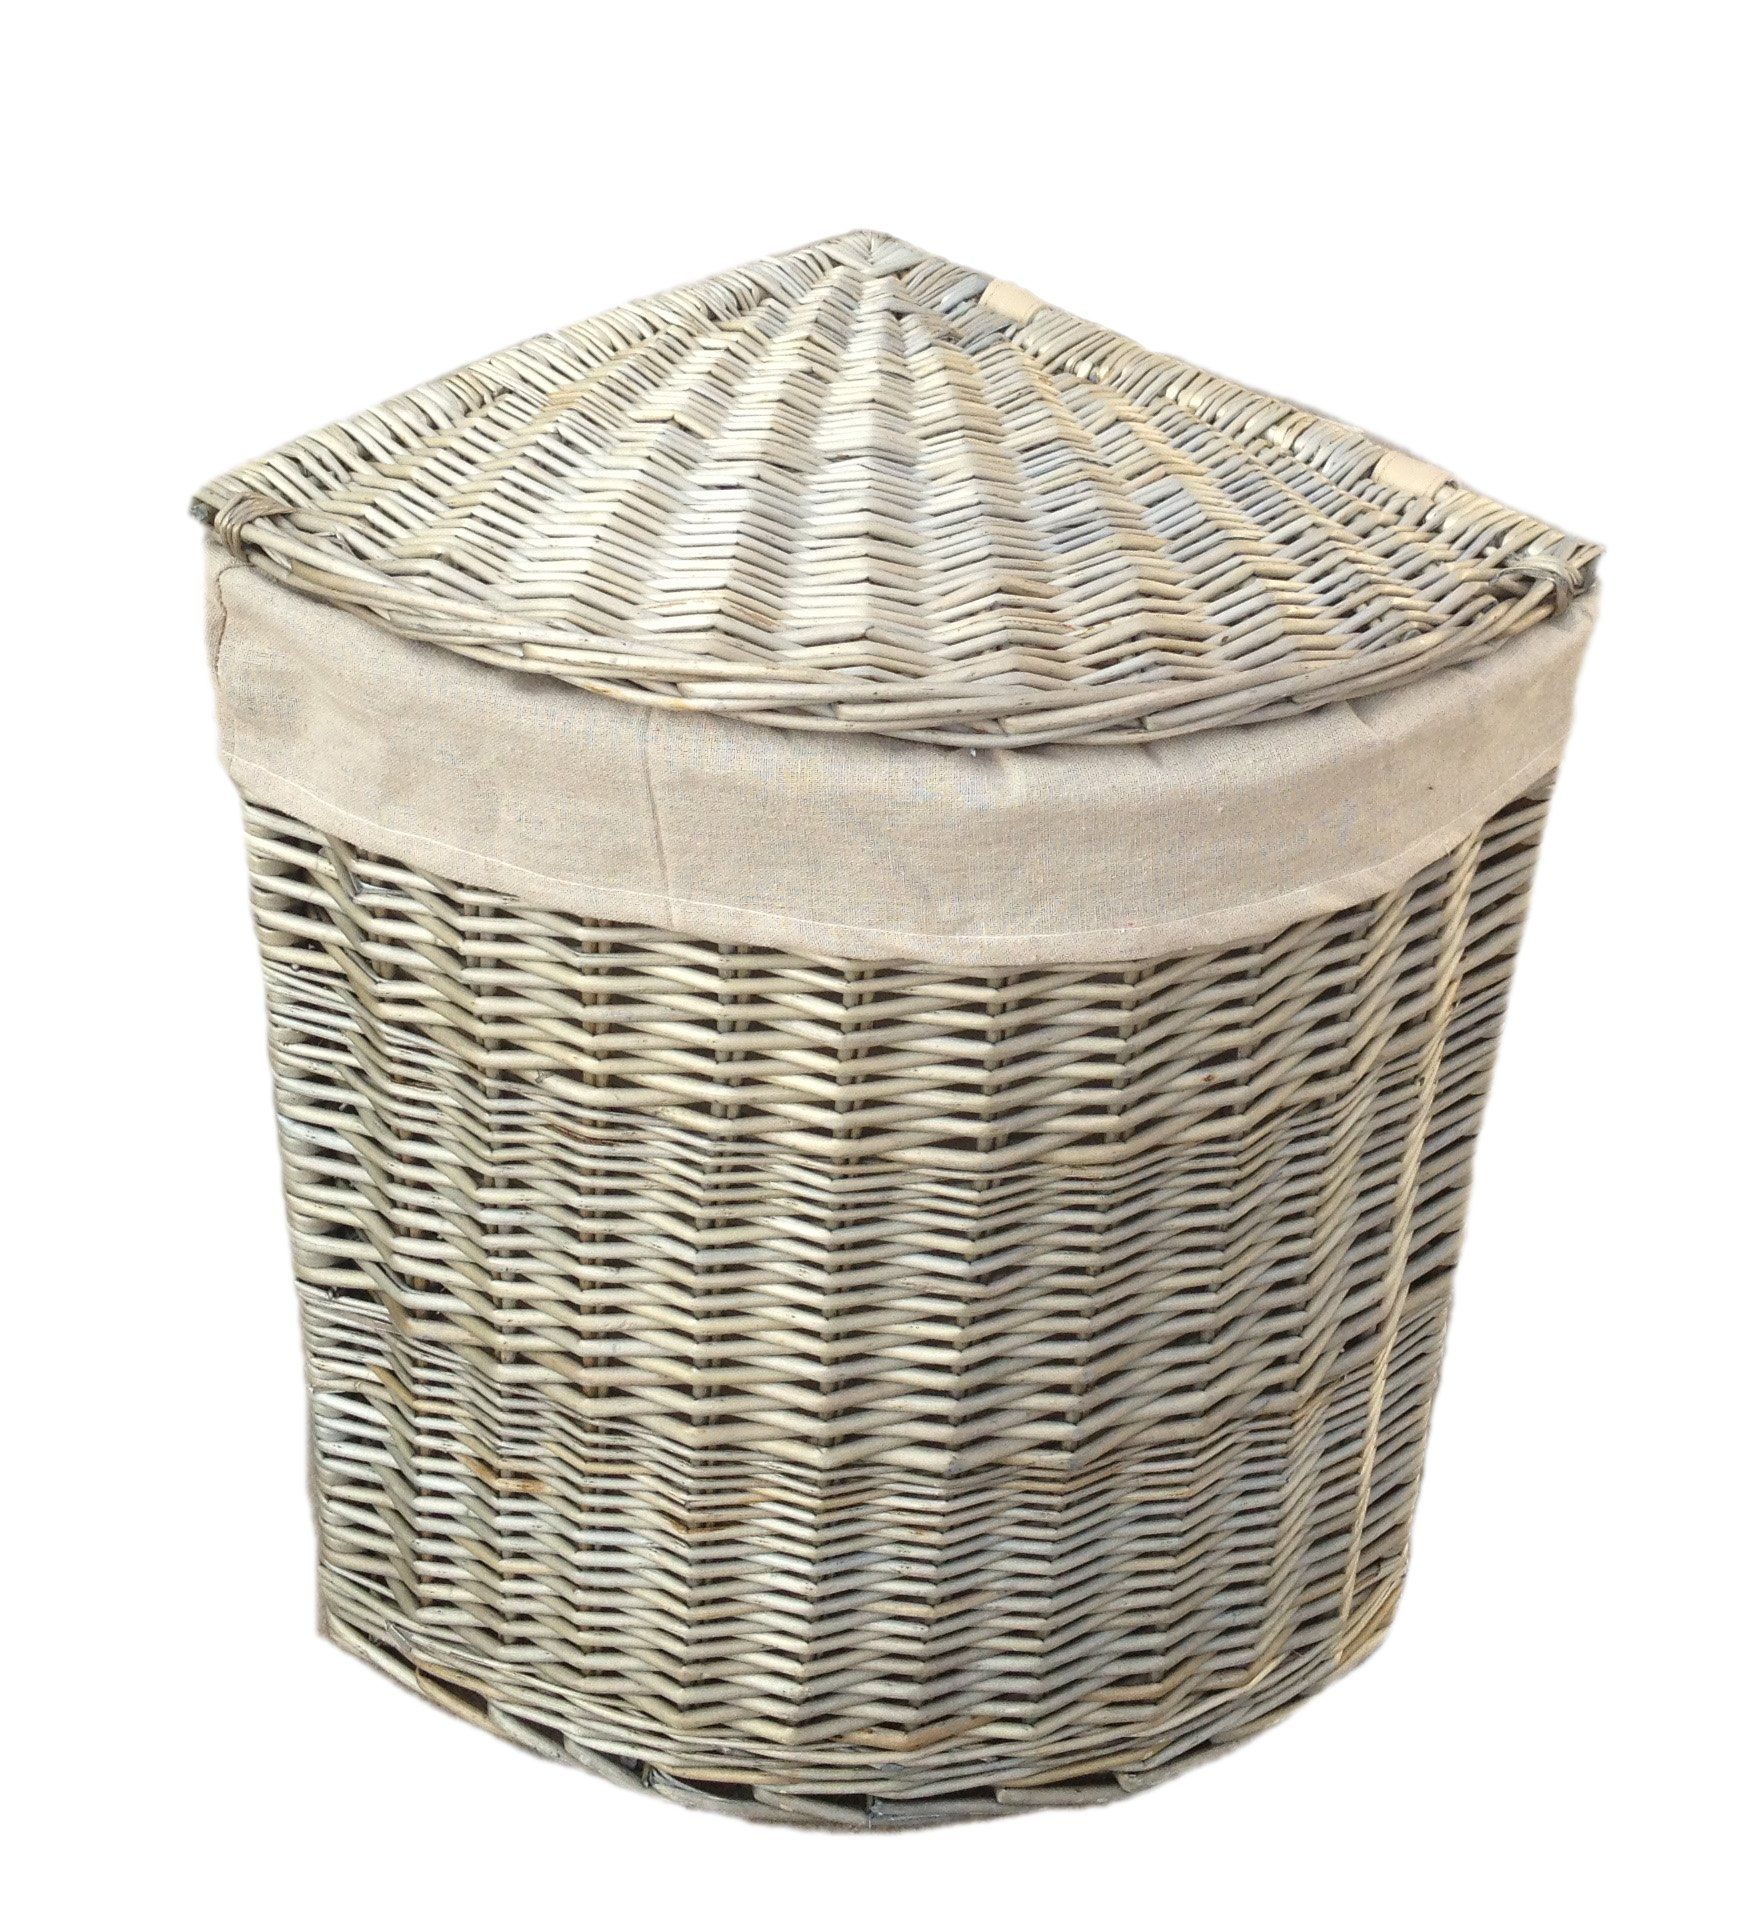 Decorative Laundry Hamper Grey Corner Antique Wash Wicker Laundry Basket  Decorative Laundry